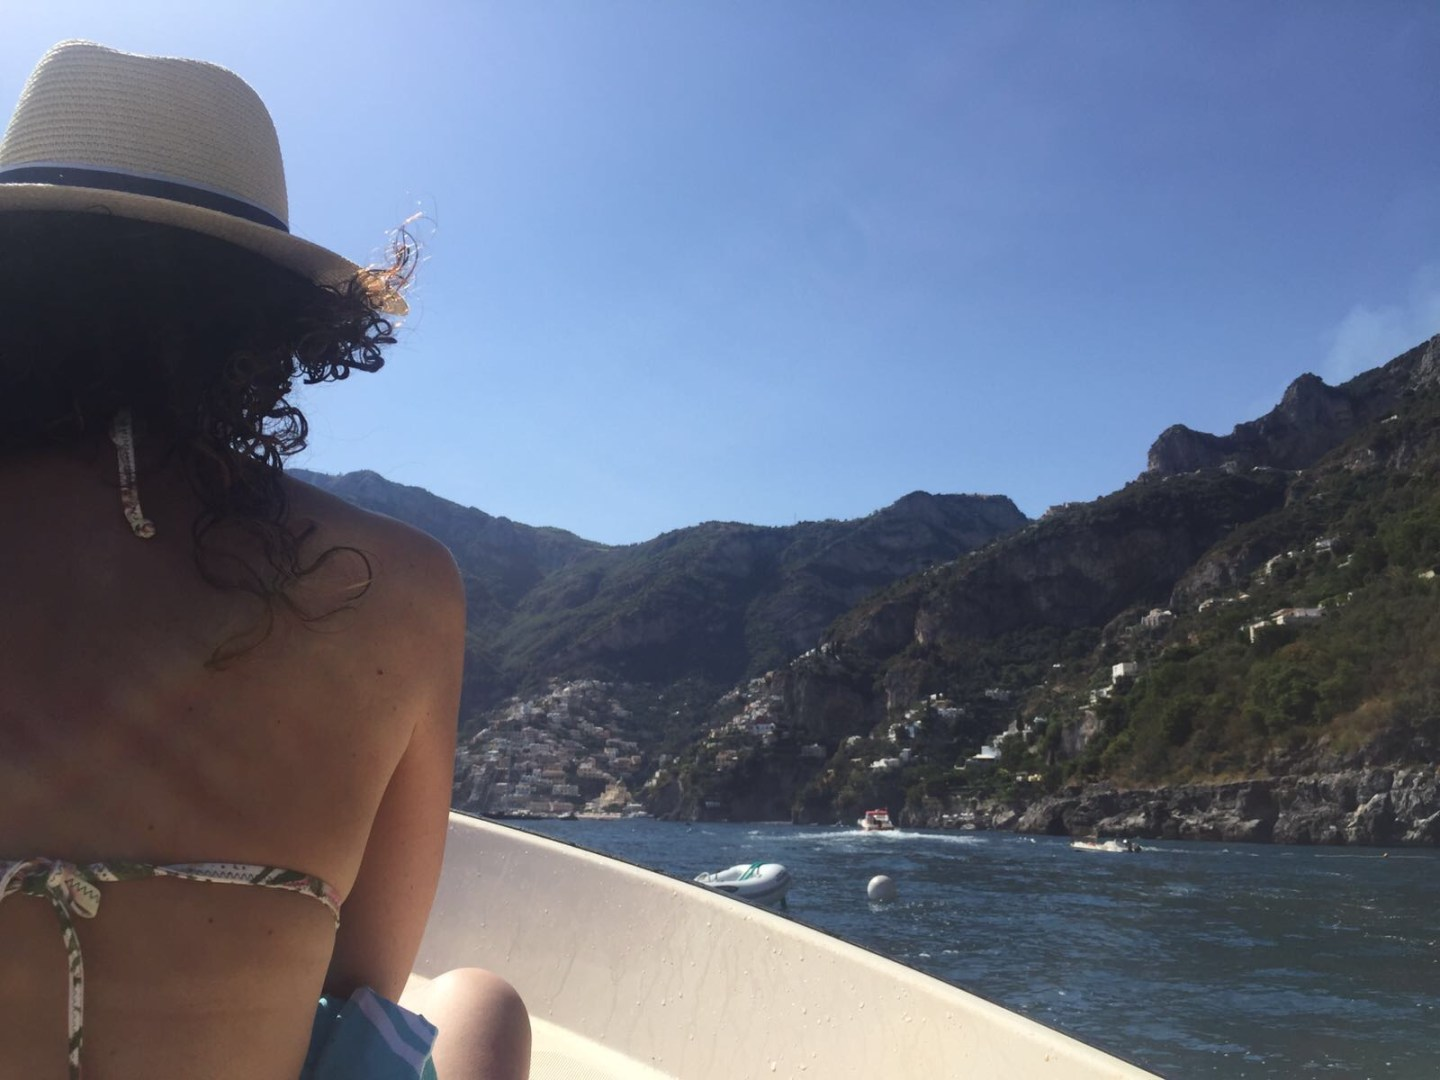 The-Frilly-Diaries-in-barca-verso-Positano